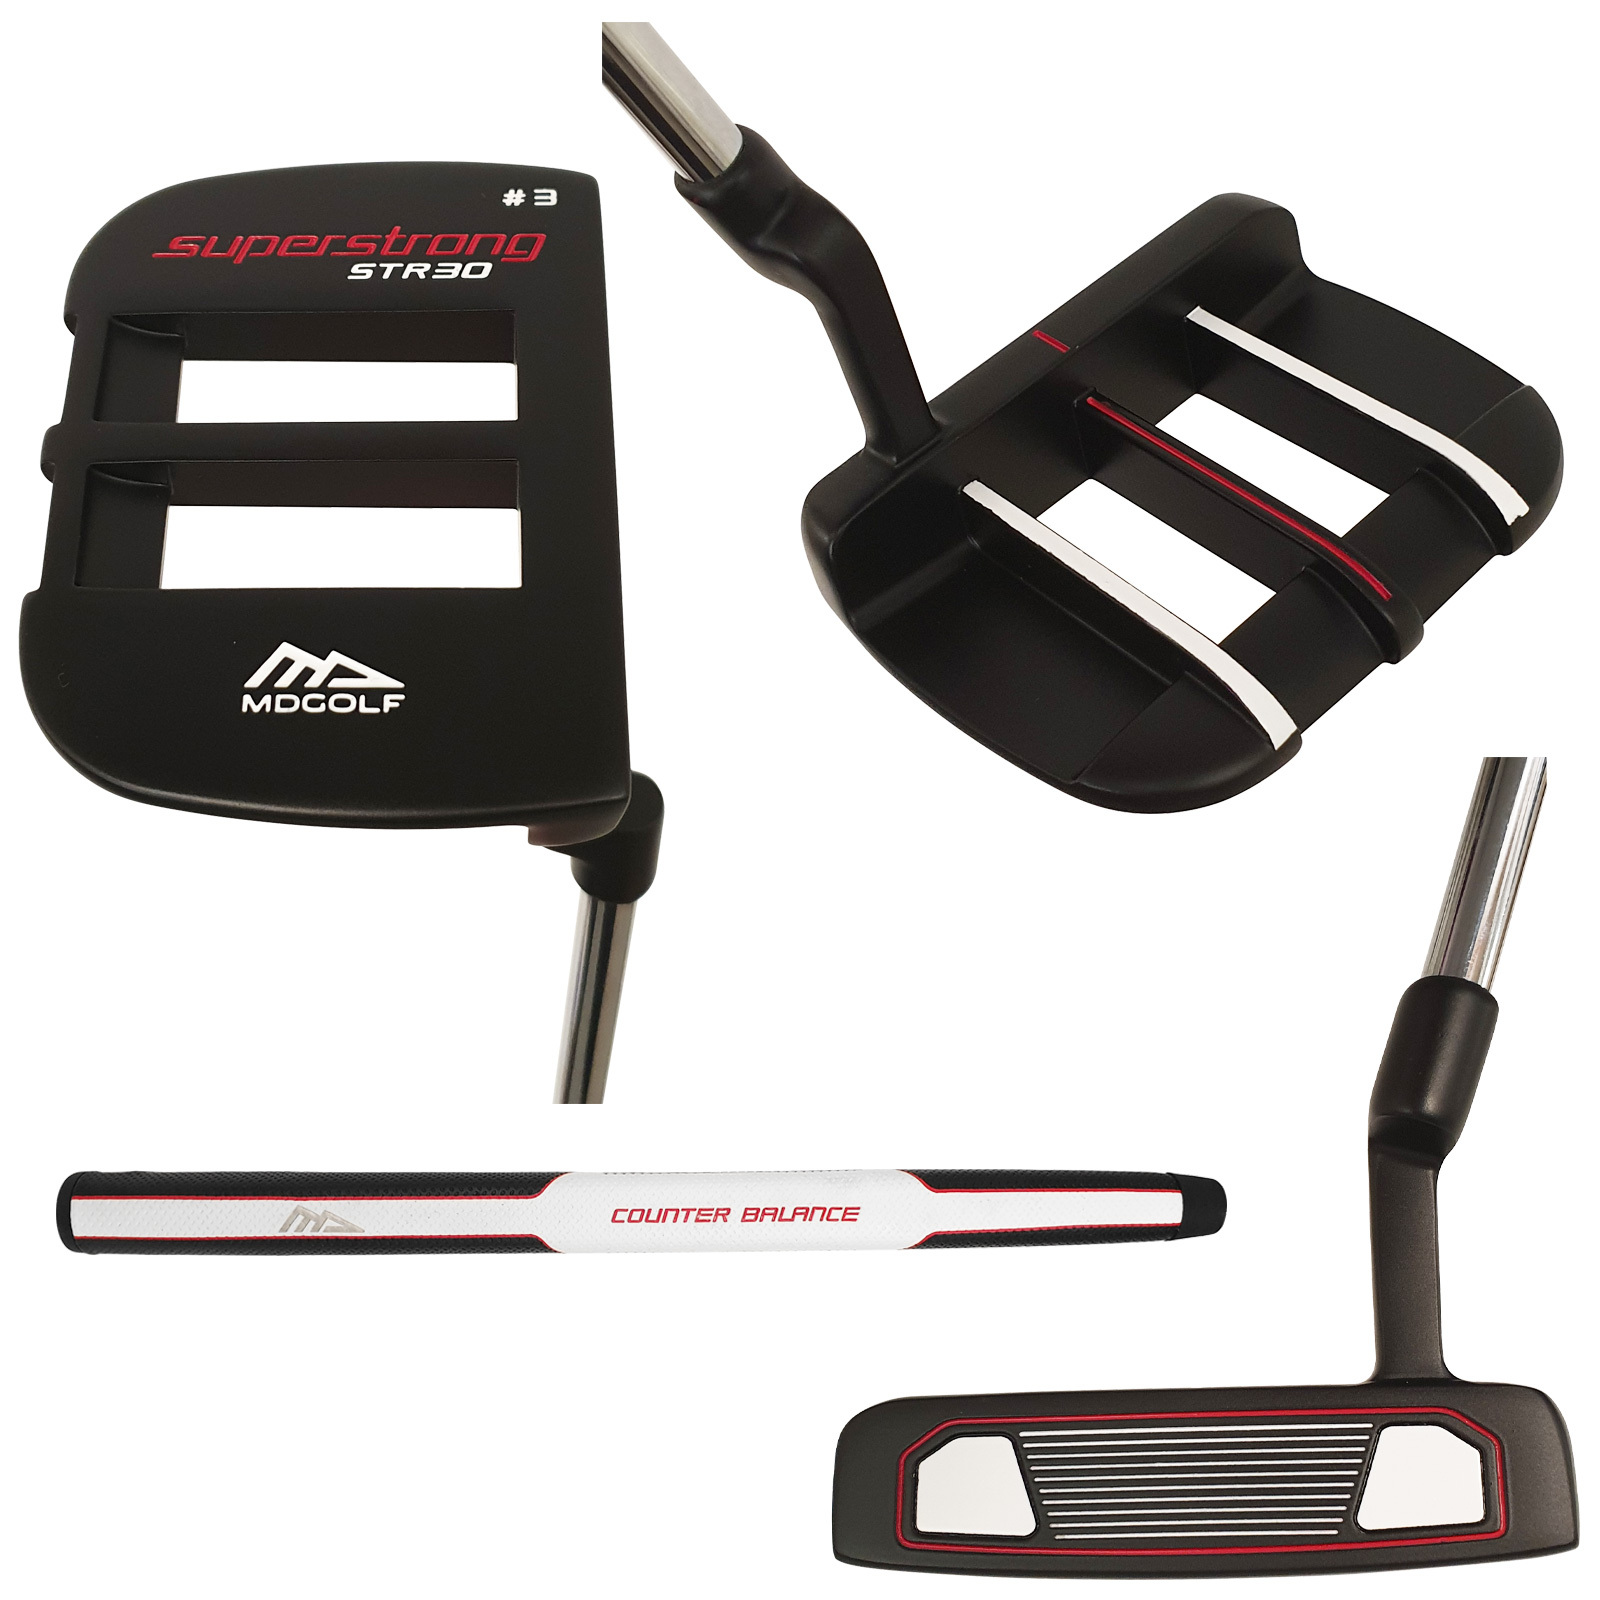 2019-MD-Golf-Mens-Superstrong-STR30-Putter-Mallet-Blade-New-Club-Right-Handed thumbnail 4